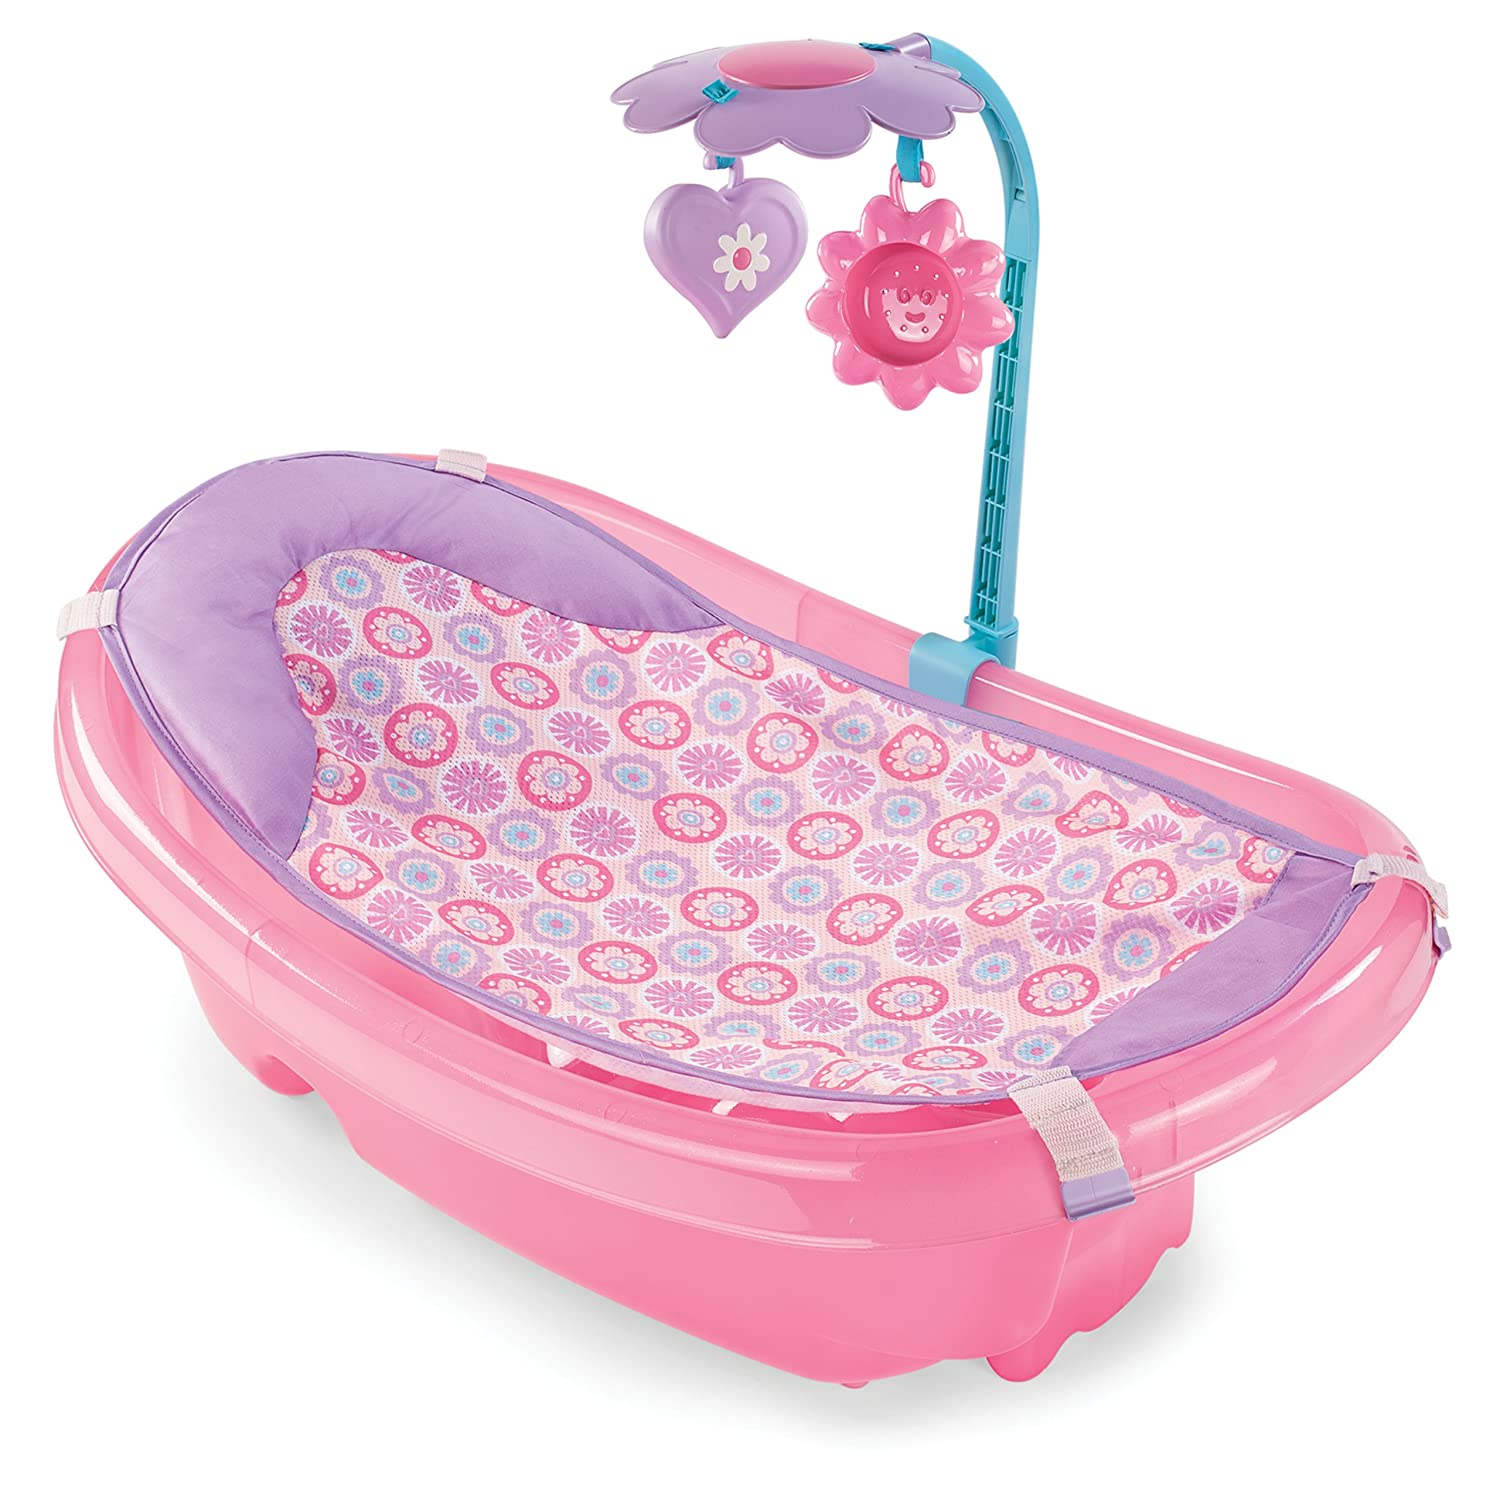 Amazon.com : Summer Infant Sparkle Fun Newborn-to-Toddler Baby Tub ...